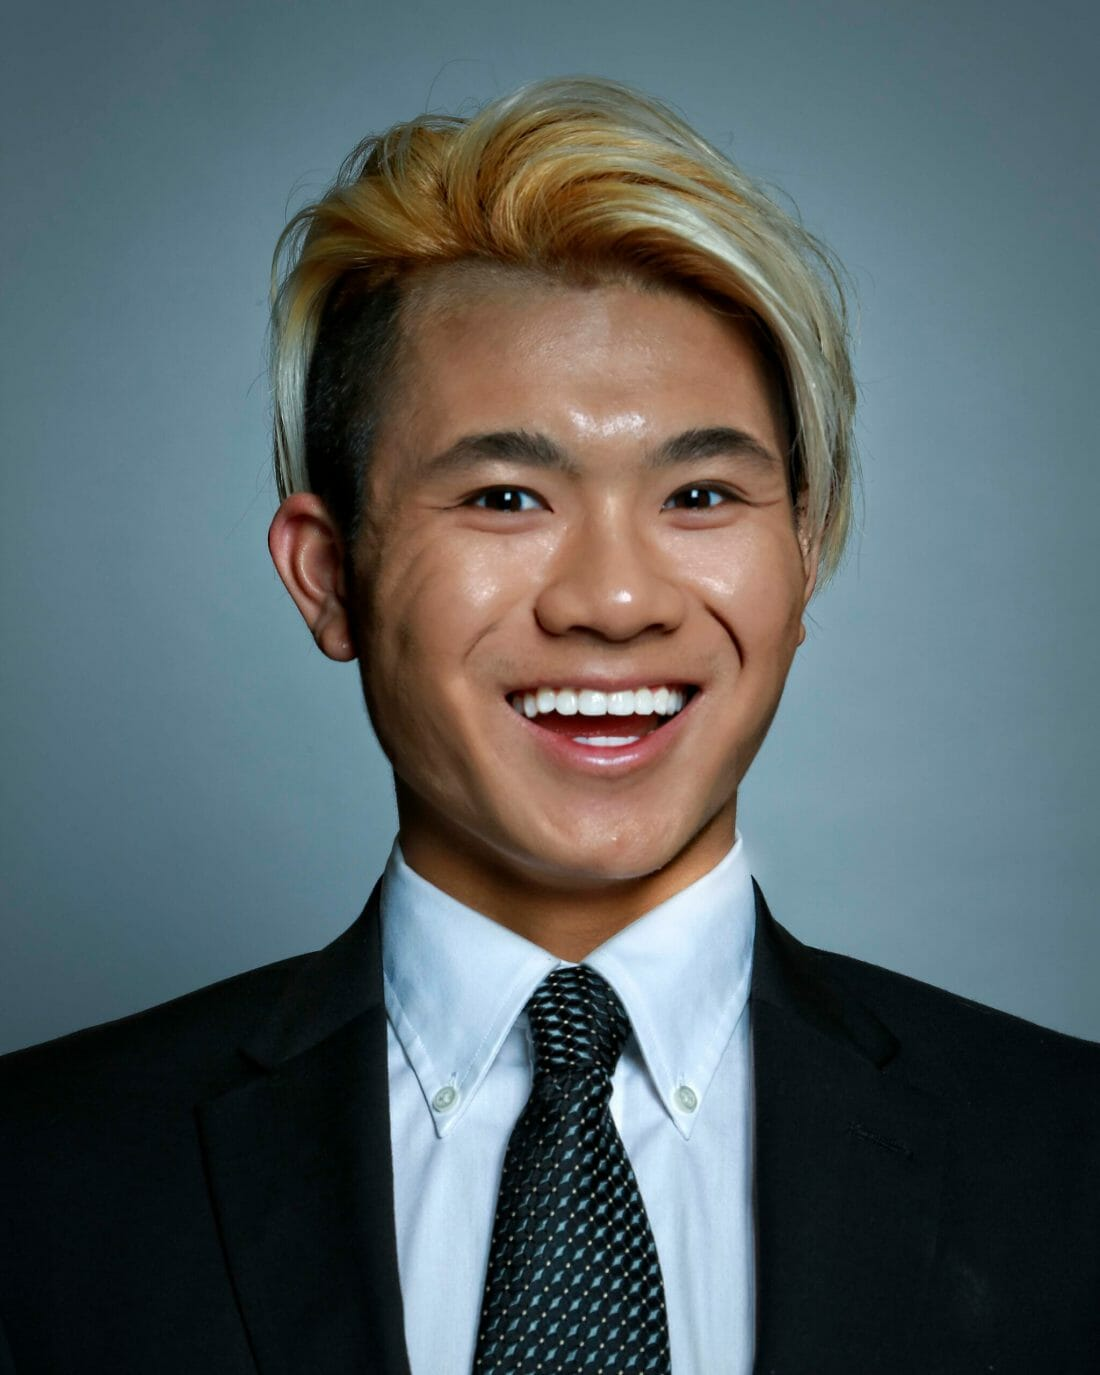 Young Asian Male getting a Professional headshot taken.